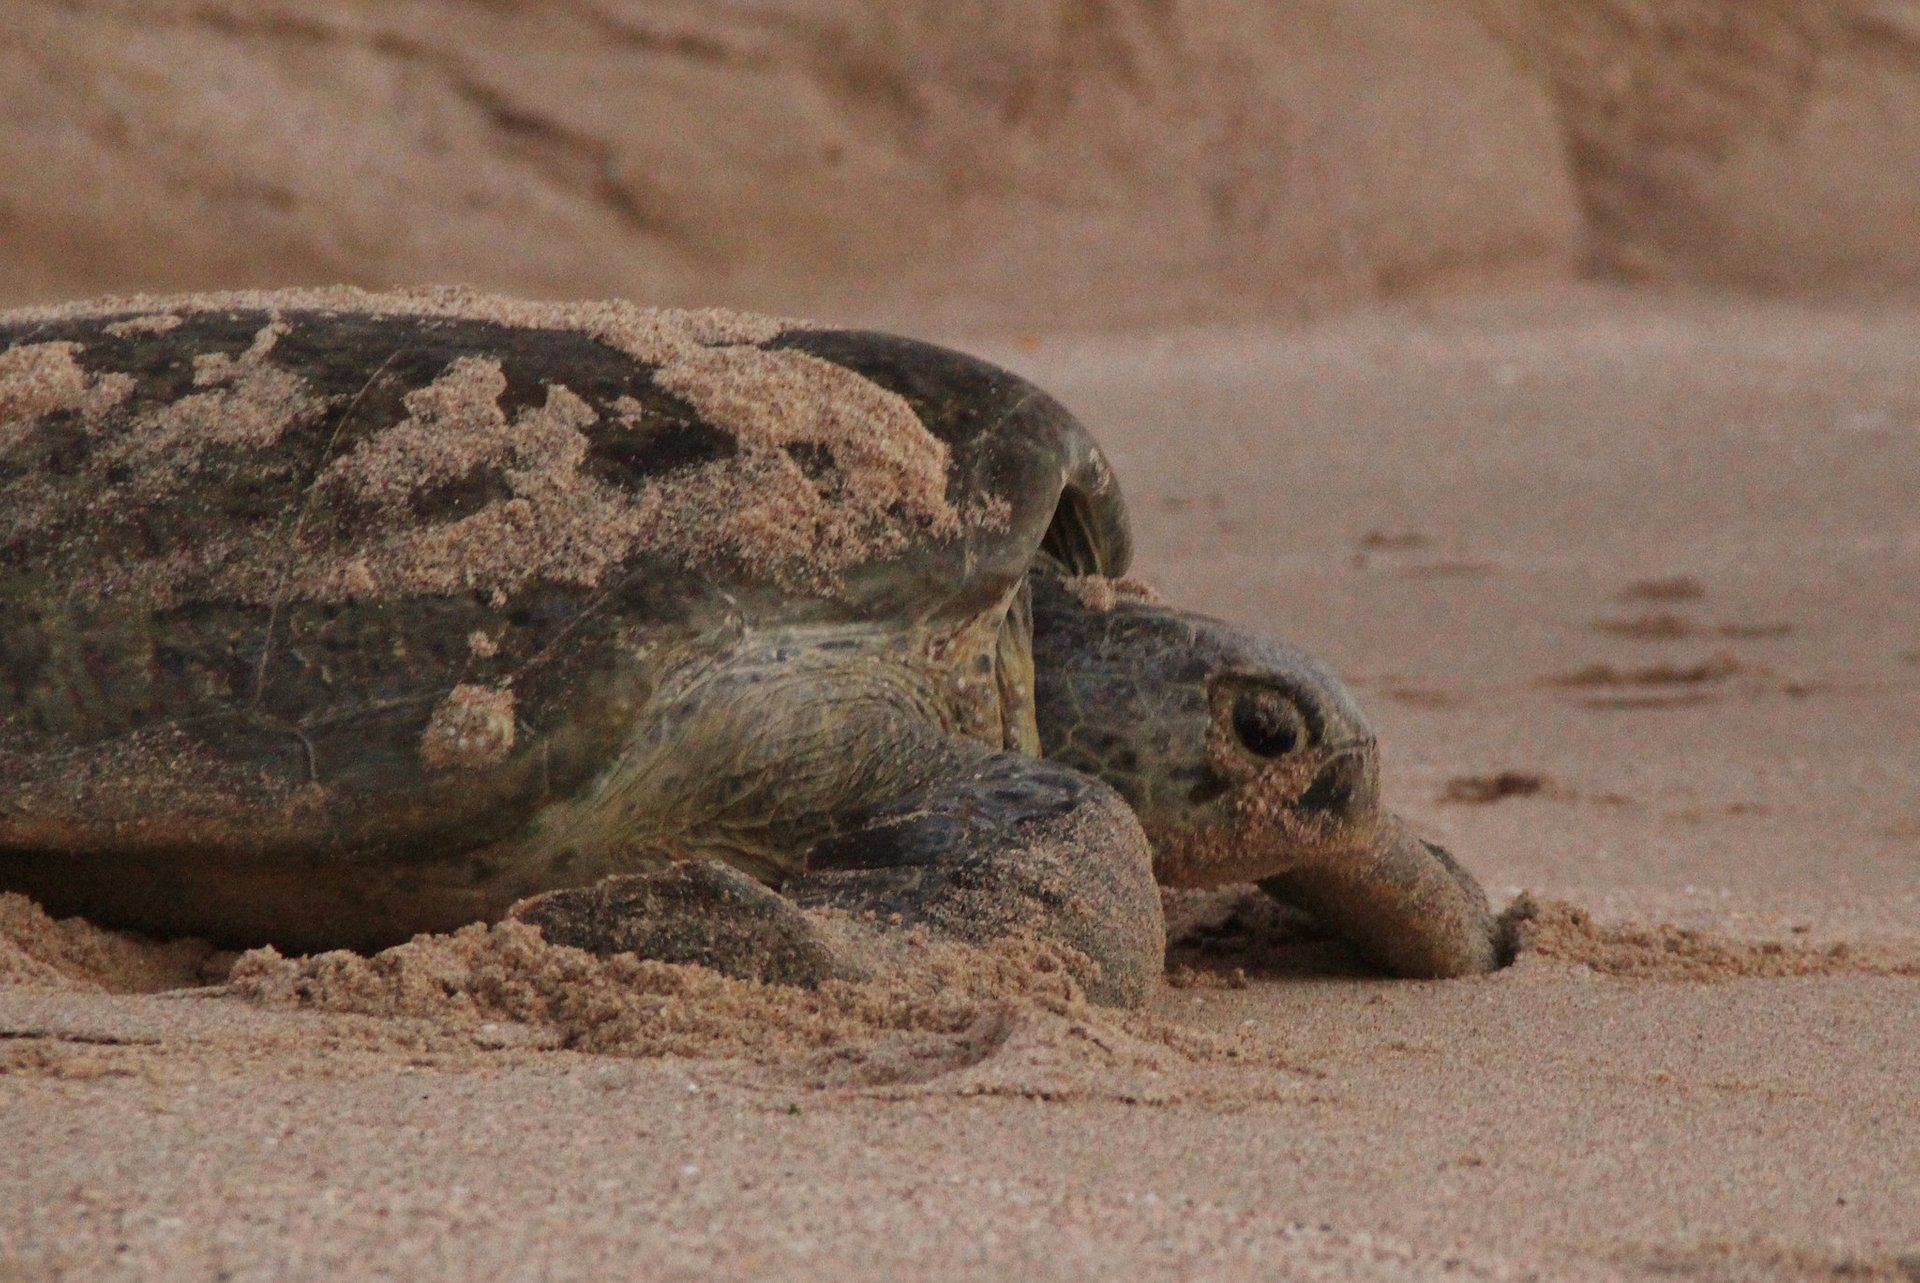 Turtle at Ras Al Hadd 2020